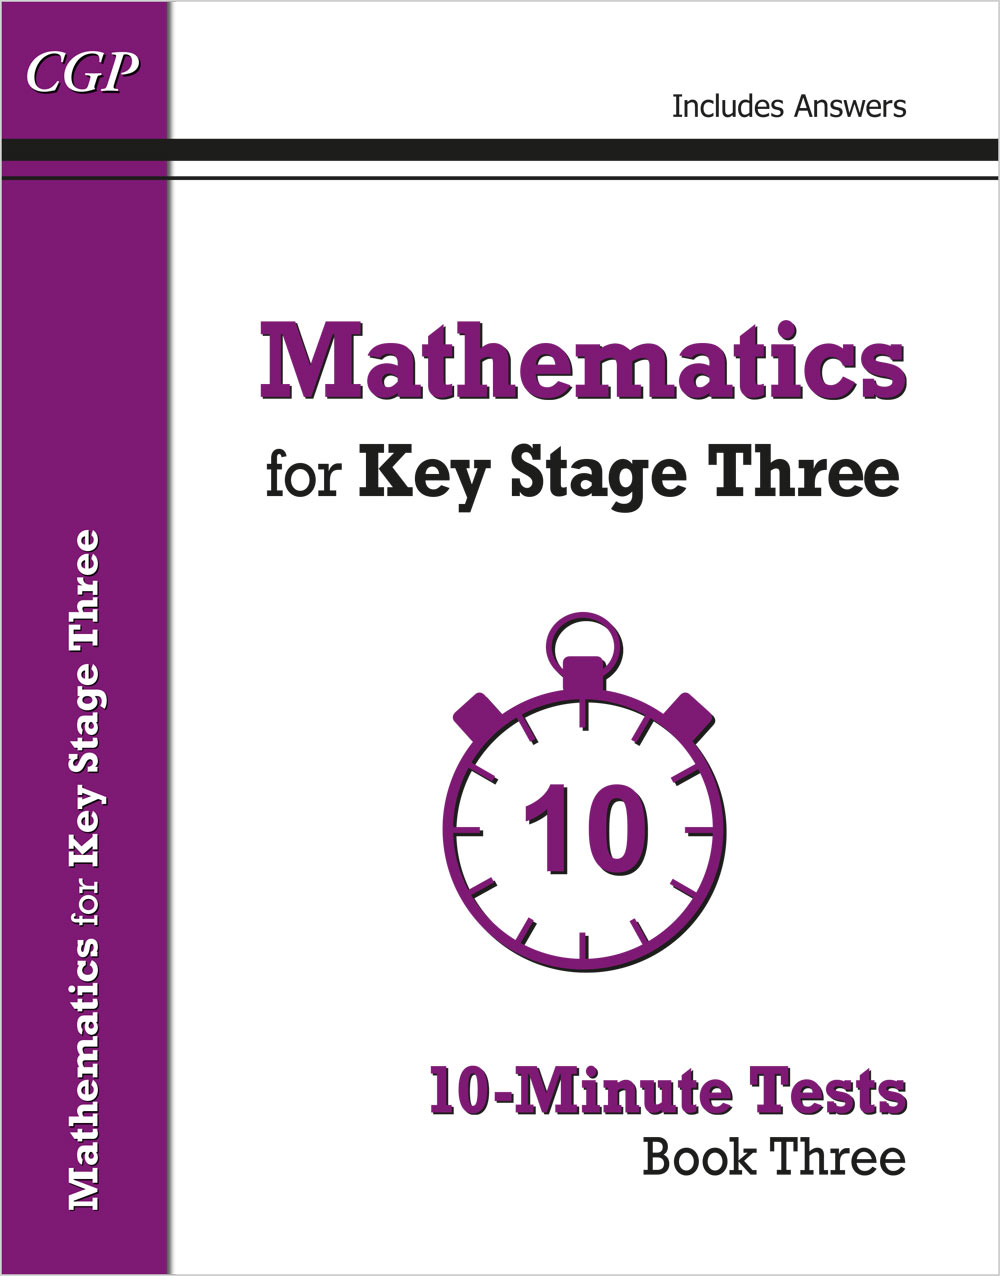 M3XP31 - Mathematics for KS3: 10-Minute Tests - Book 3 (including Answers)